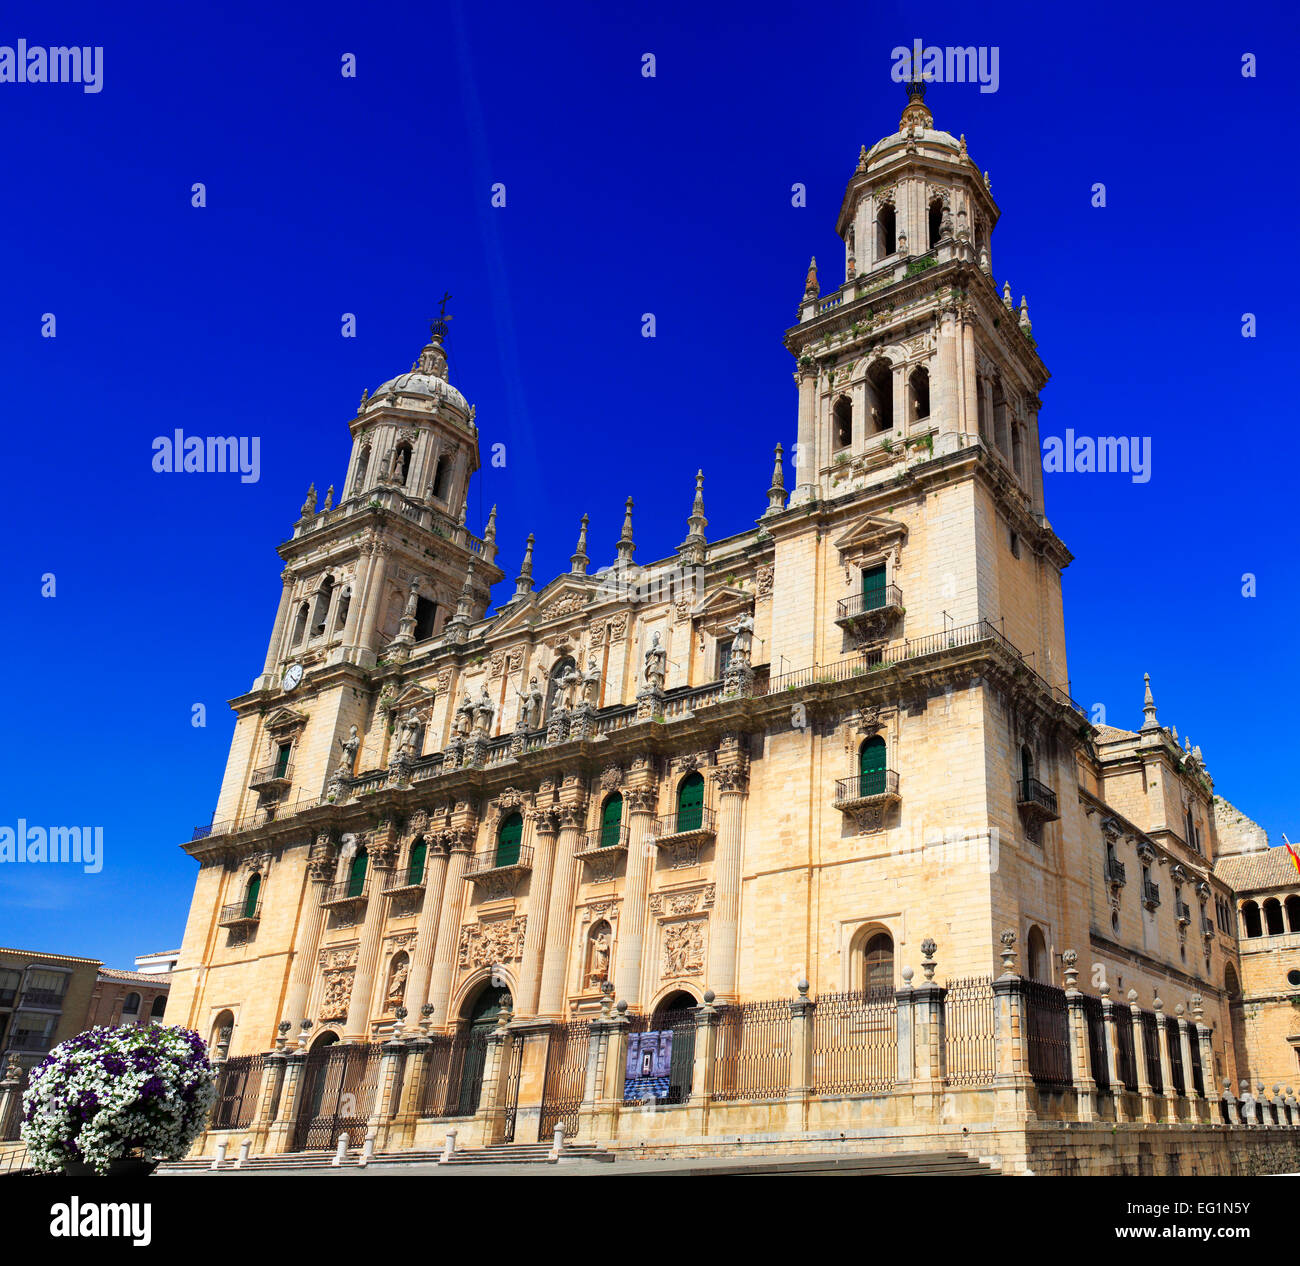 Cathedral, Jaen, Andalusia, Spain Stock Photo